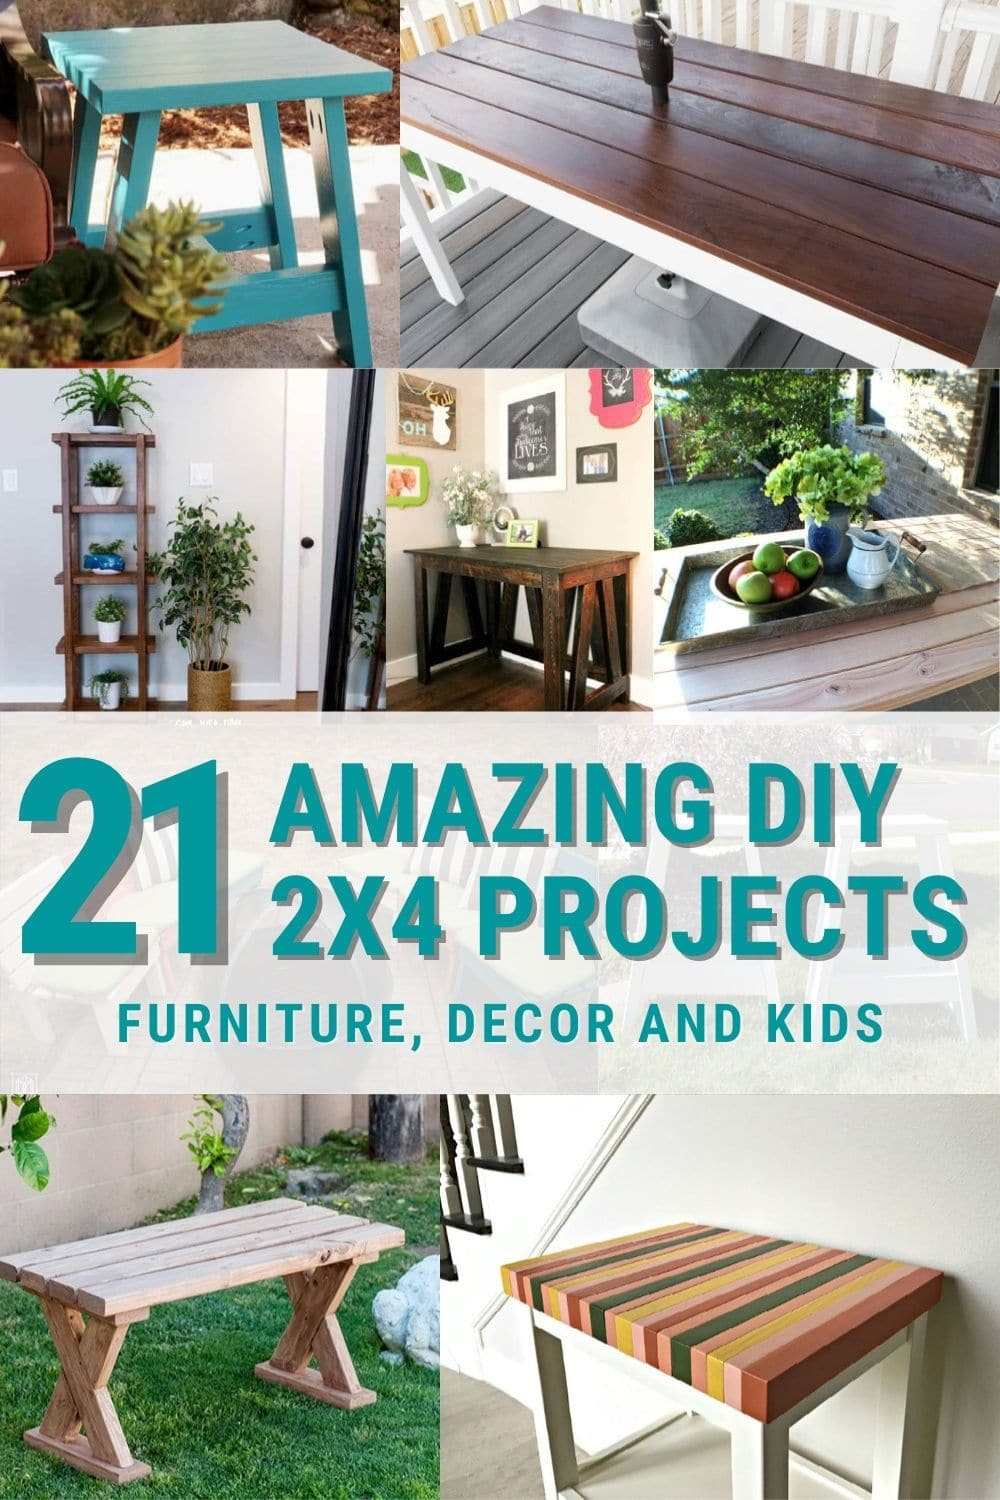 image collage of 2x4 projects with text 21 amazin gdiy 2x4 projects, furniture, decor and kids